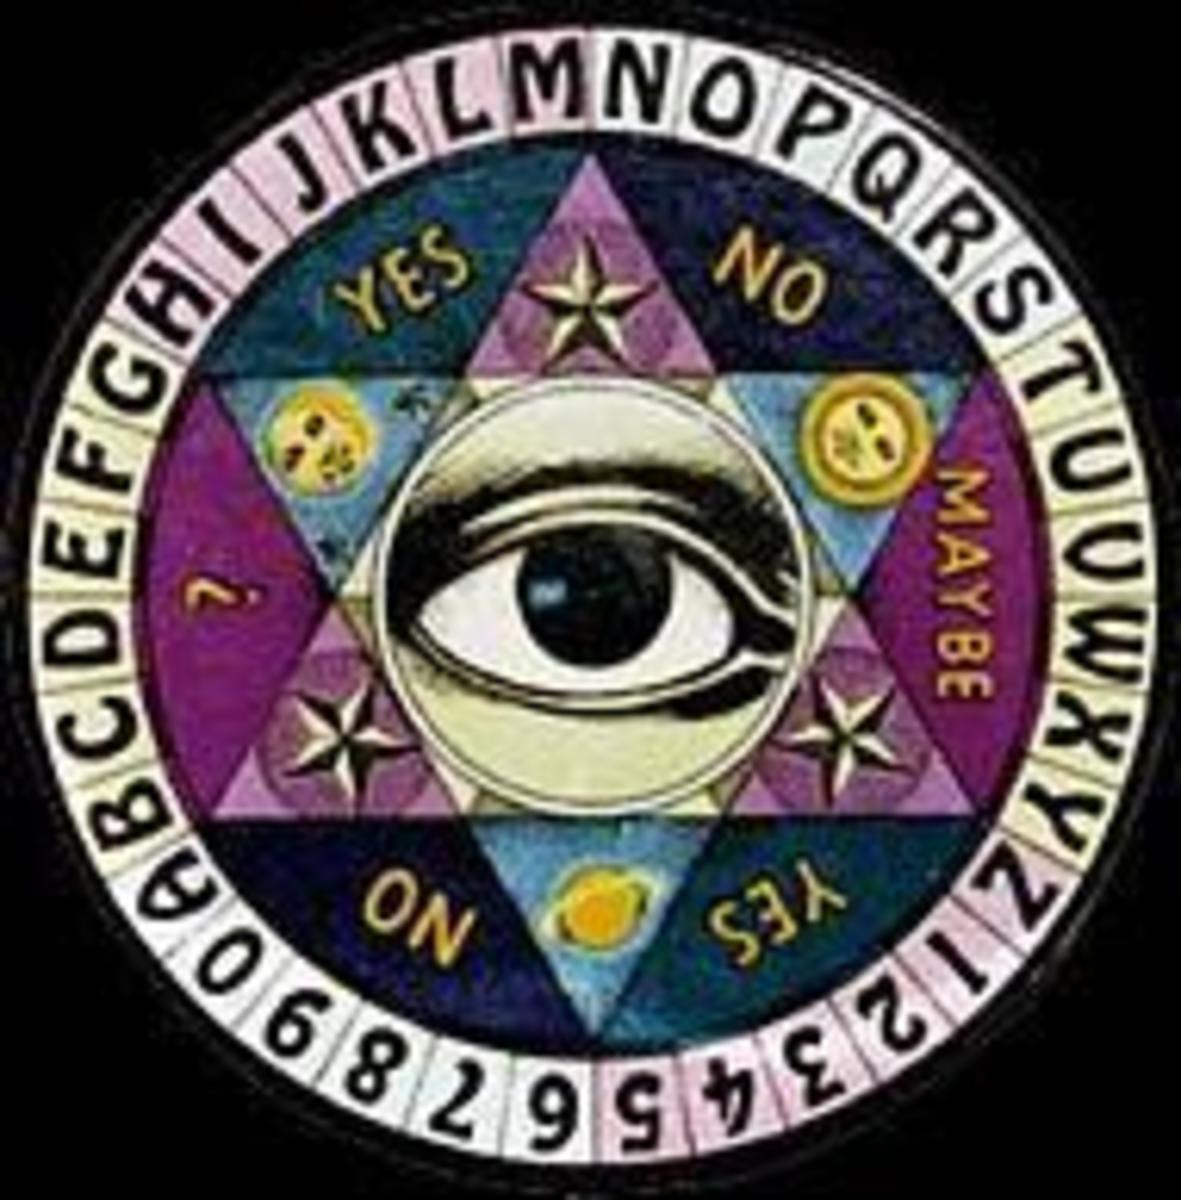 Ouija Board: Paranormal Phenomena or Harmless Game?